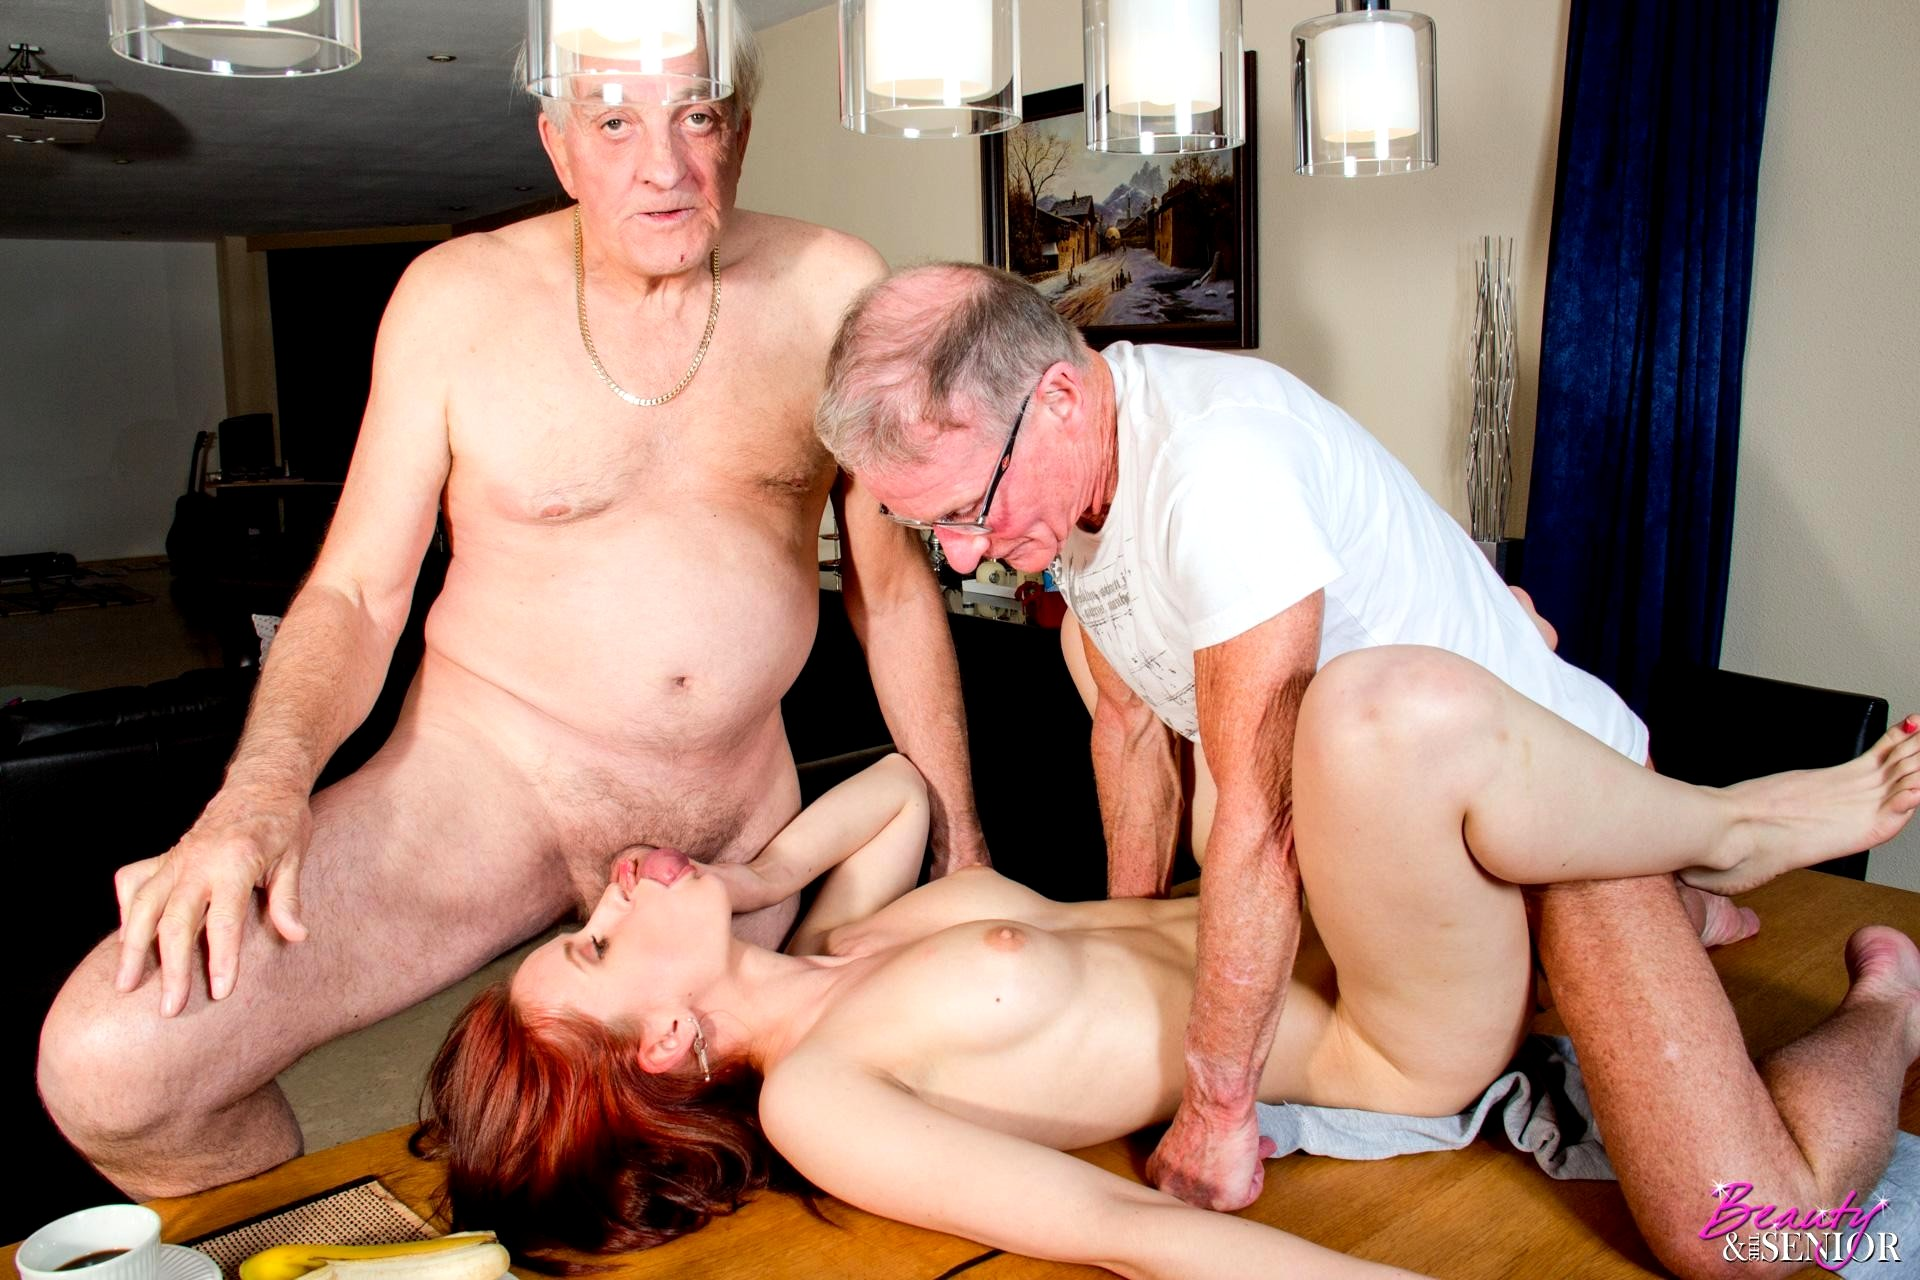 hardcore-video-sex-old-man-tube